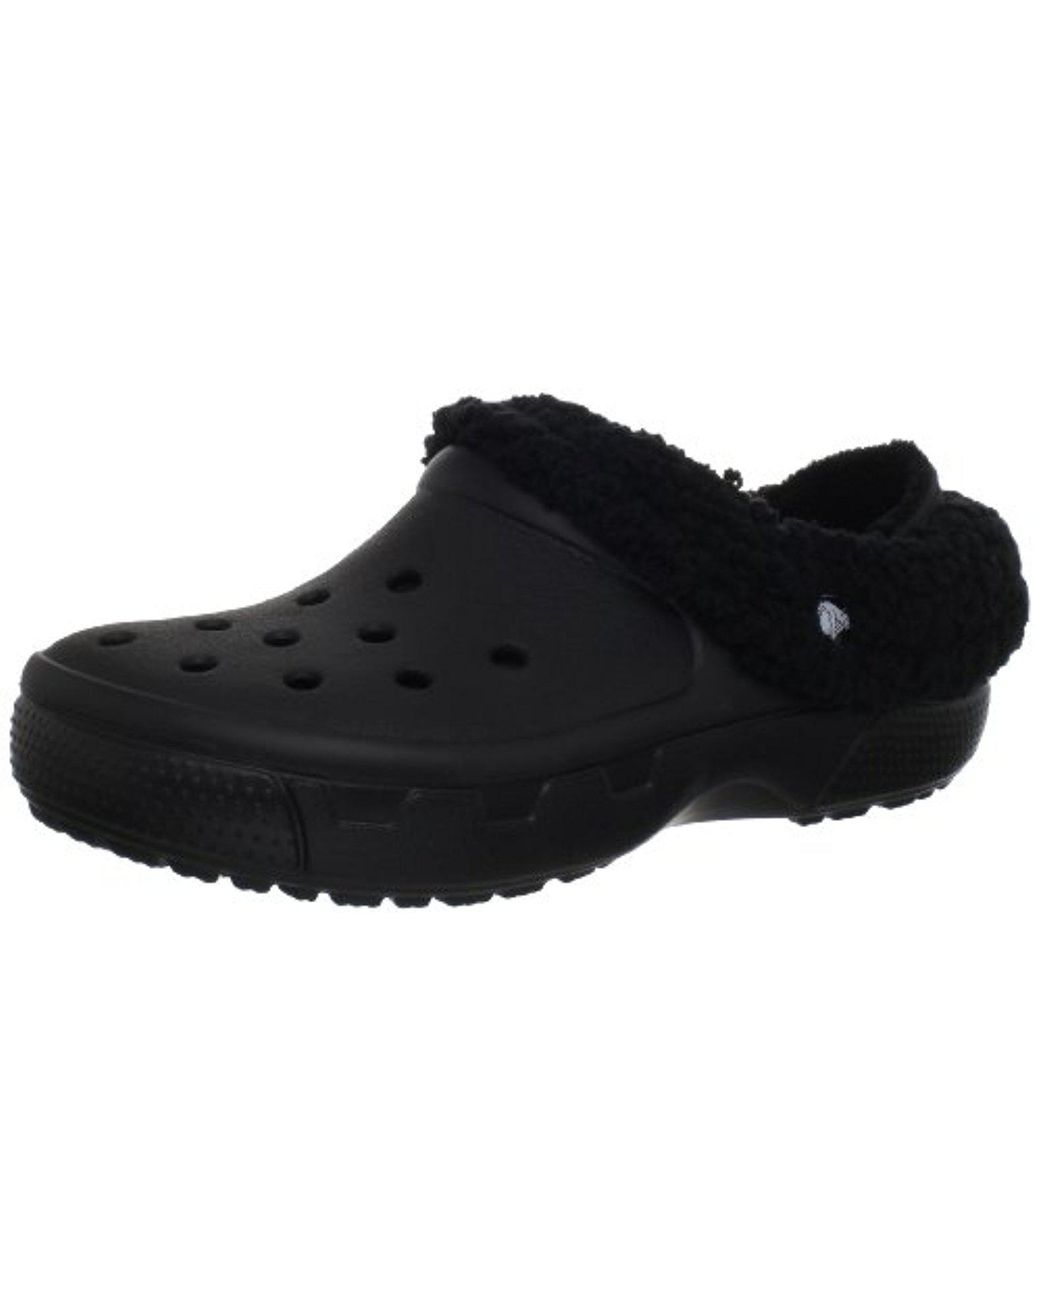 9abaee10f Lyst - Crocs™ Unisex Mammoth Evo Lined Clog in Black